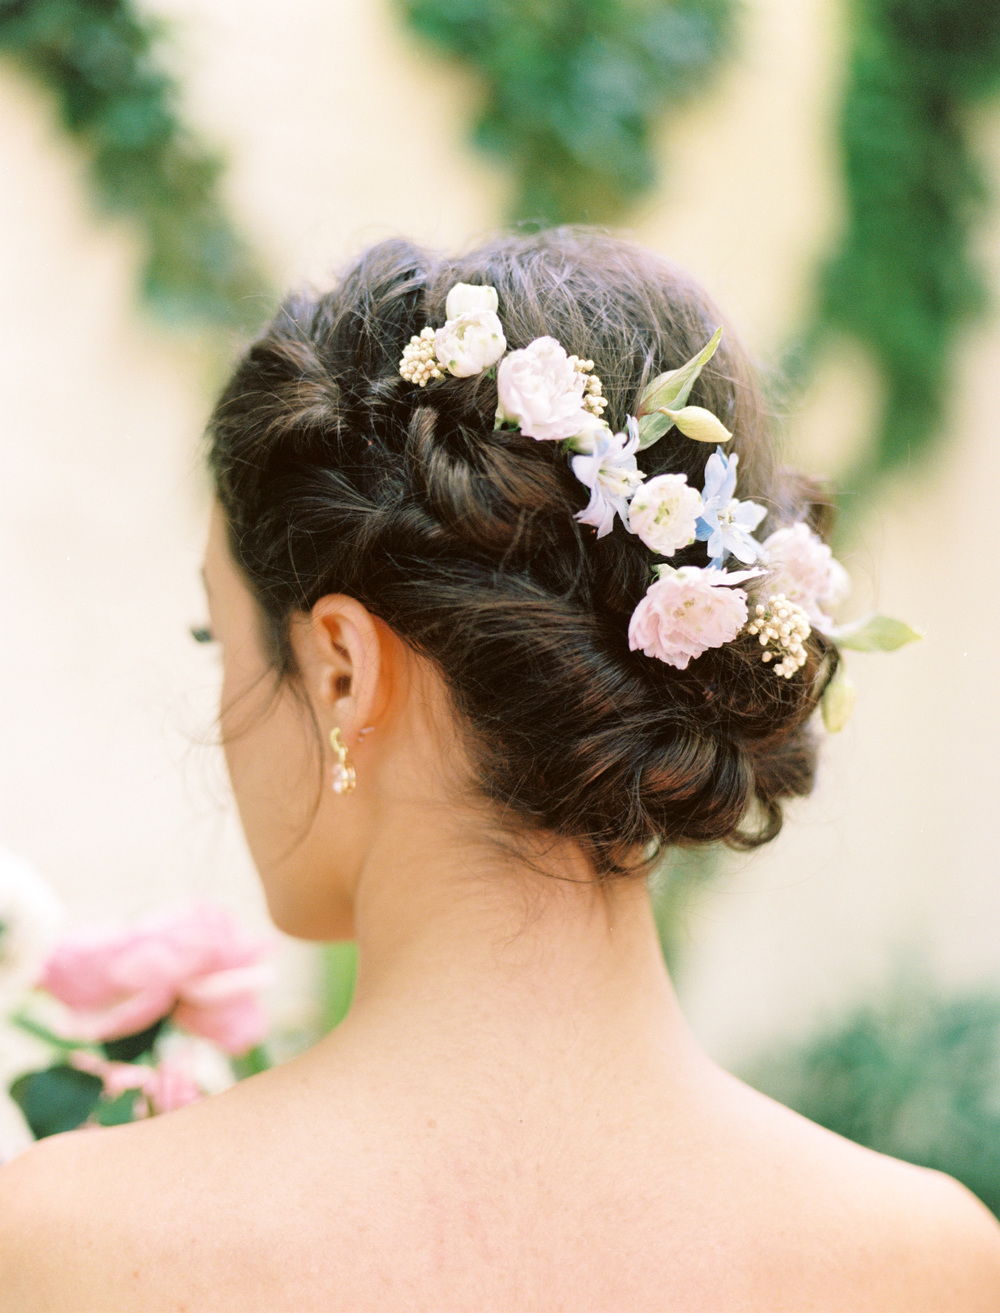 elegant texas garden wedding hair and makeup flower crown inspiration from The Wildflowers | follow us on instagram: @ thewildflowers.events